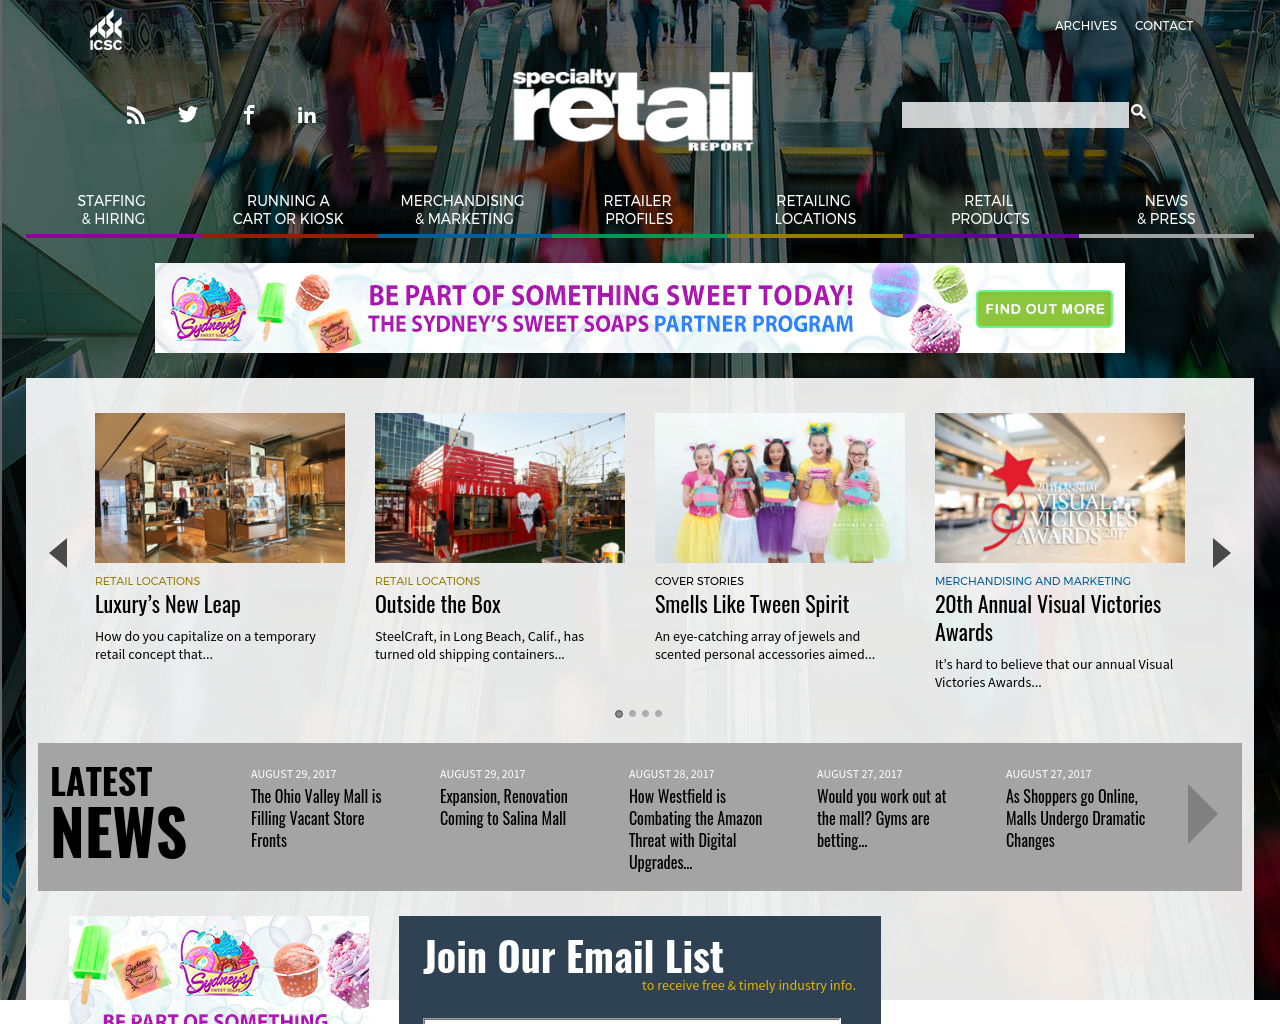 Specialty-Retail-Report-Advertising-Reviews-Pricing